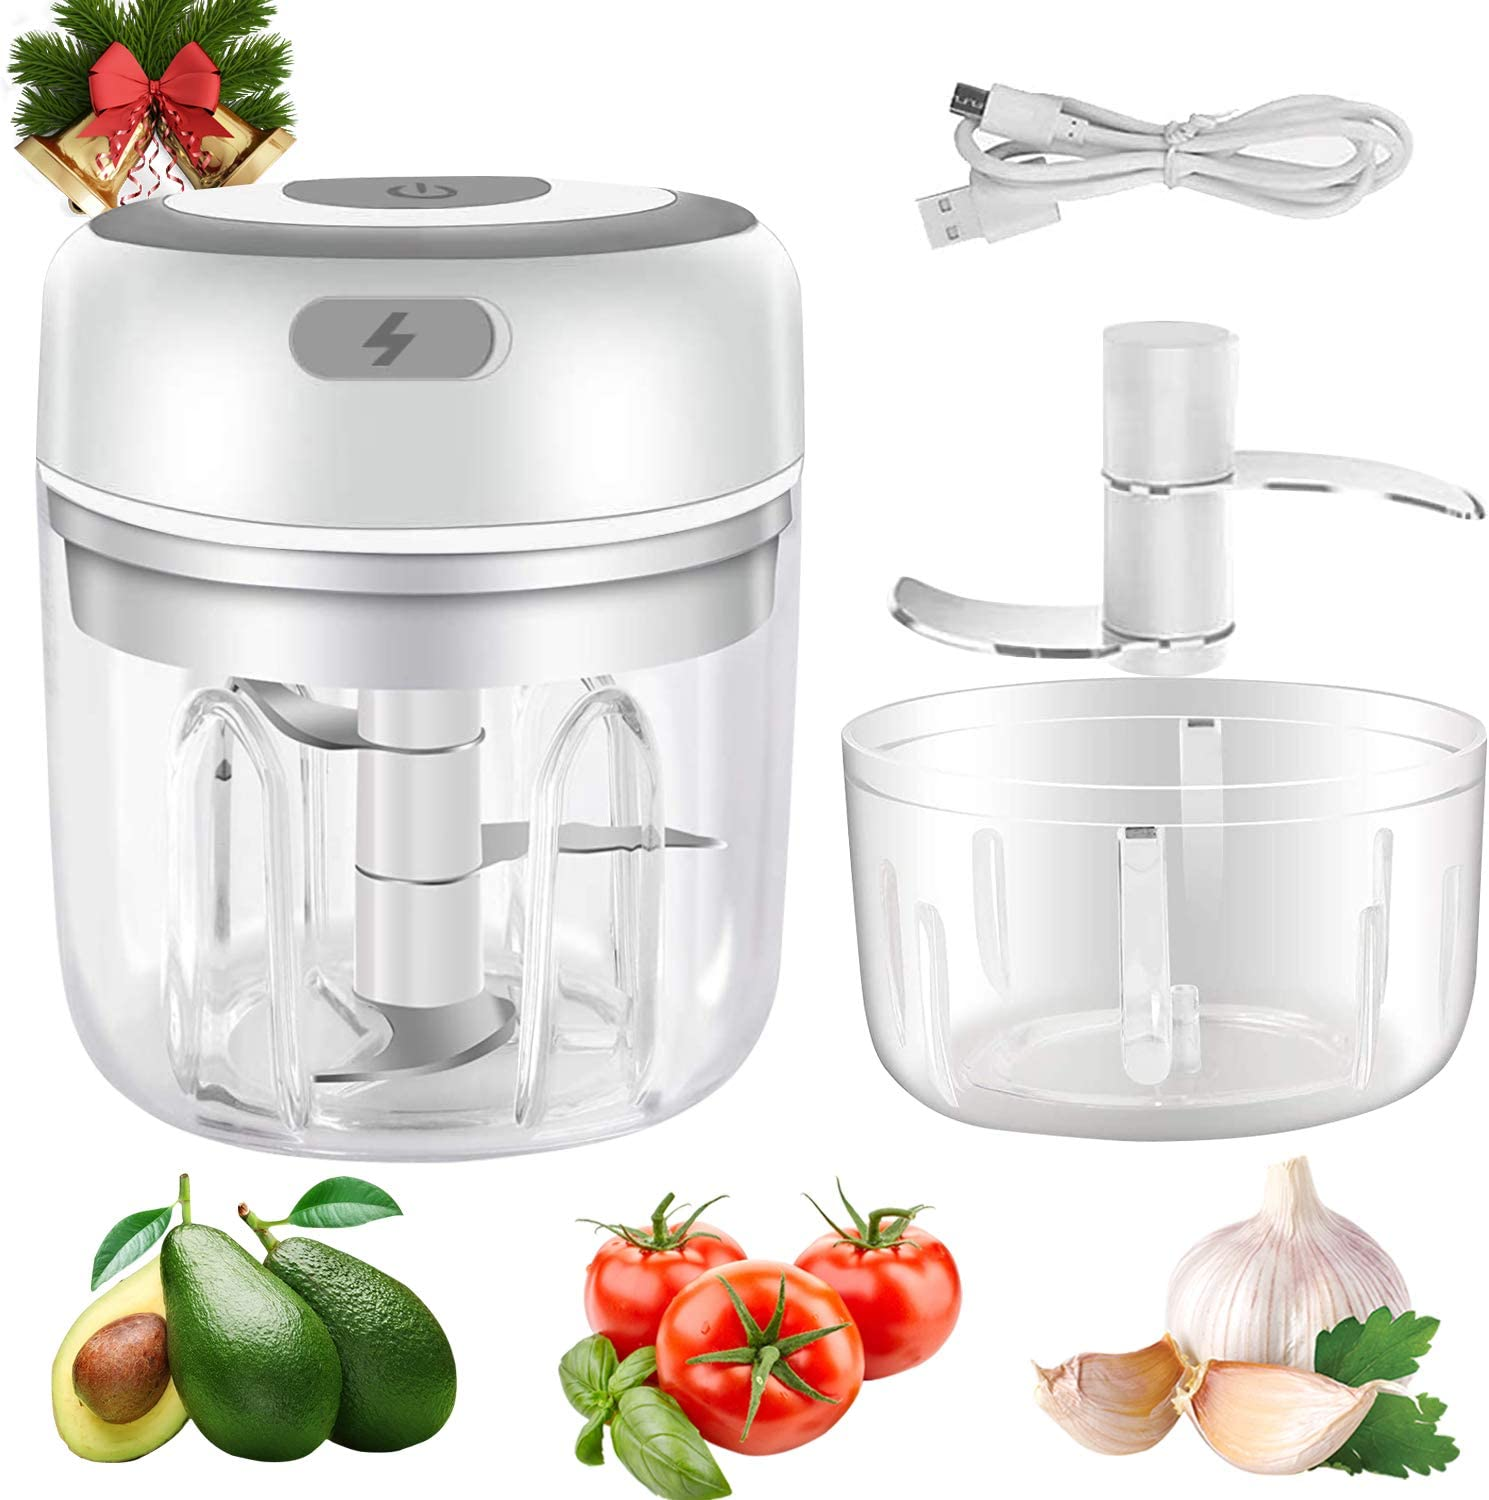 Electric Mini Garlic Chopper, 2 pack 250&100ml Food Chopper Electric, Onion Chopper Vegetable Processor/Slicer, USB Portable Mini Mincer Blender Mixer for Chili Pepper Vegetable Nuts, White